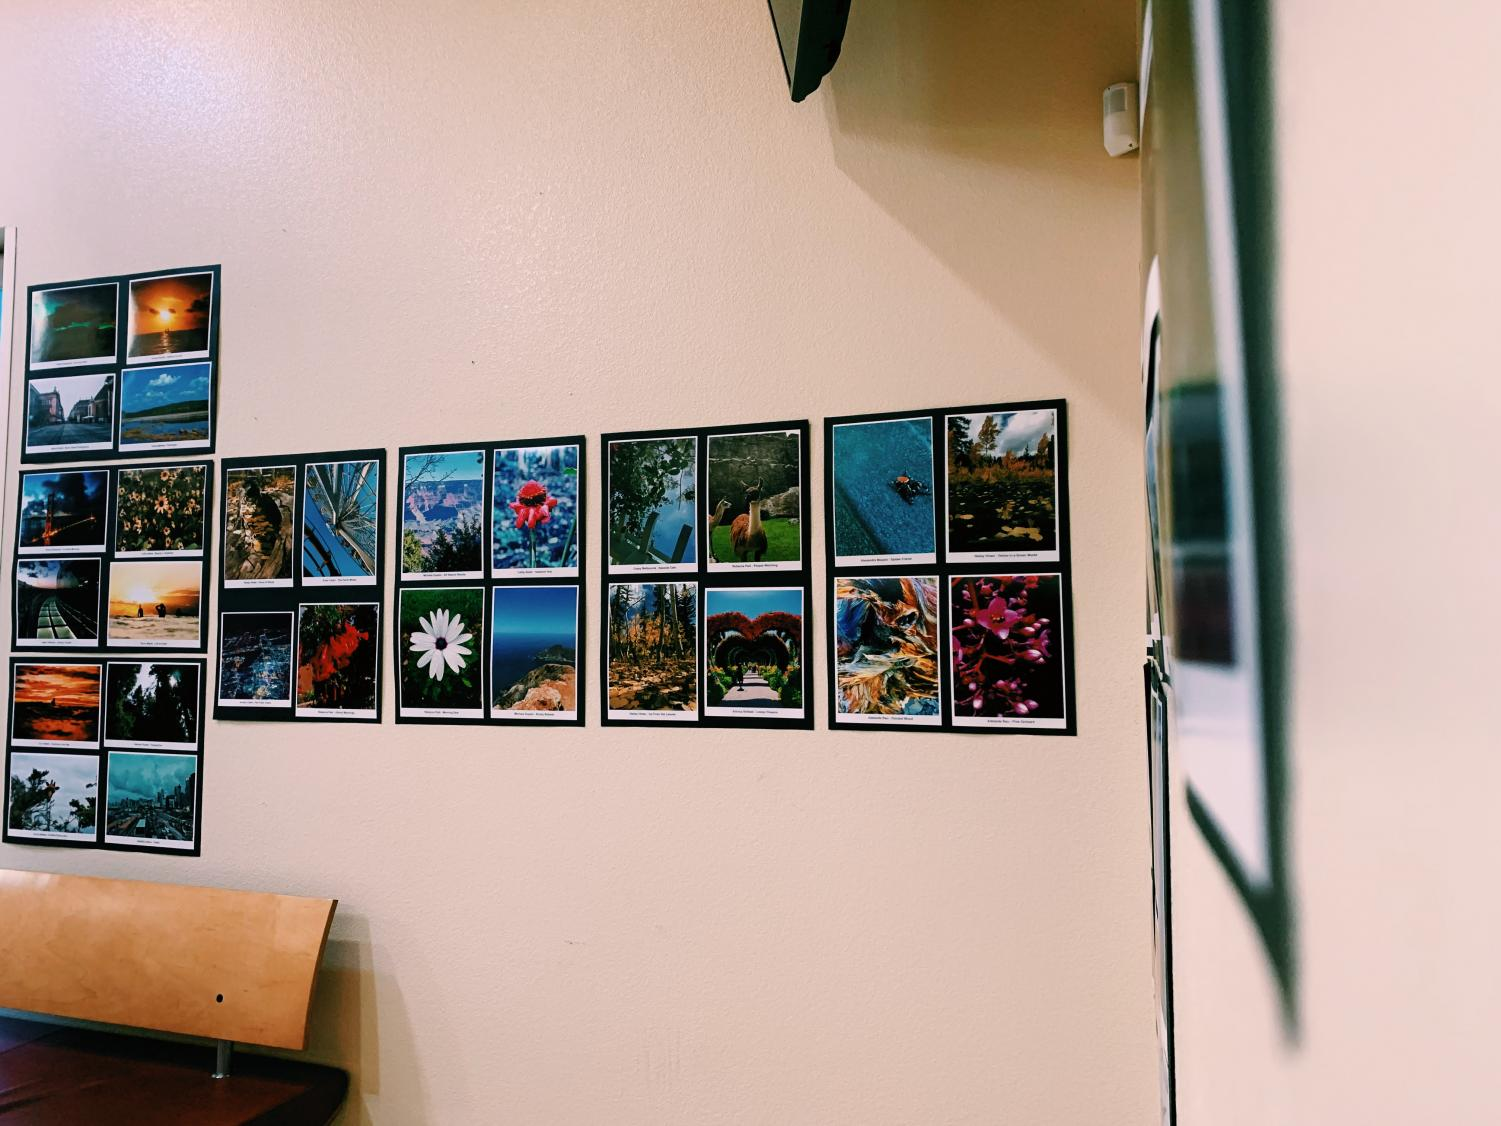 Photos that were submitted and displayed in the CPAC for all students and teachers to see!